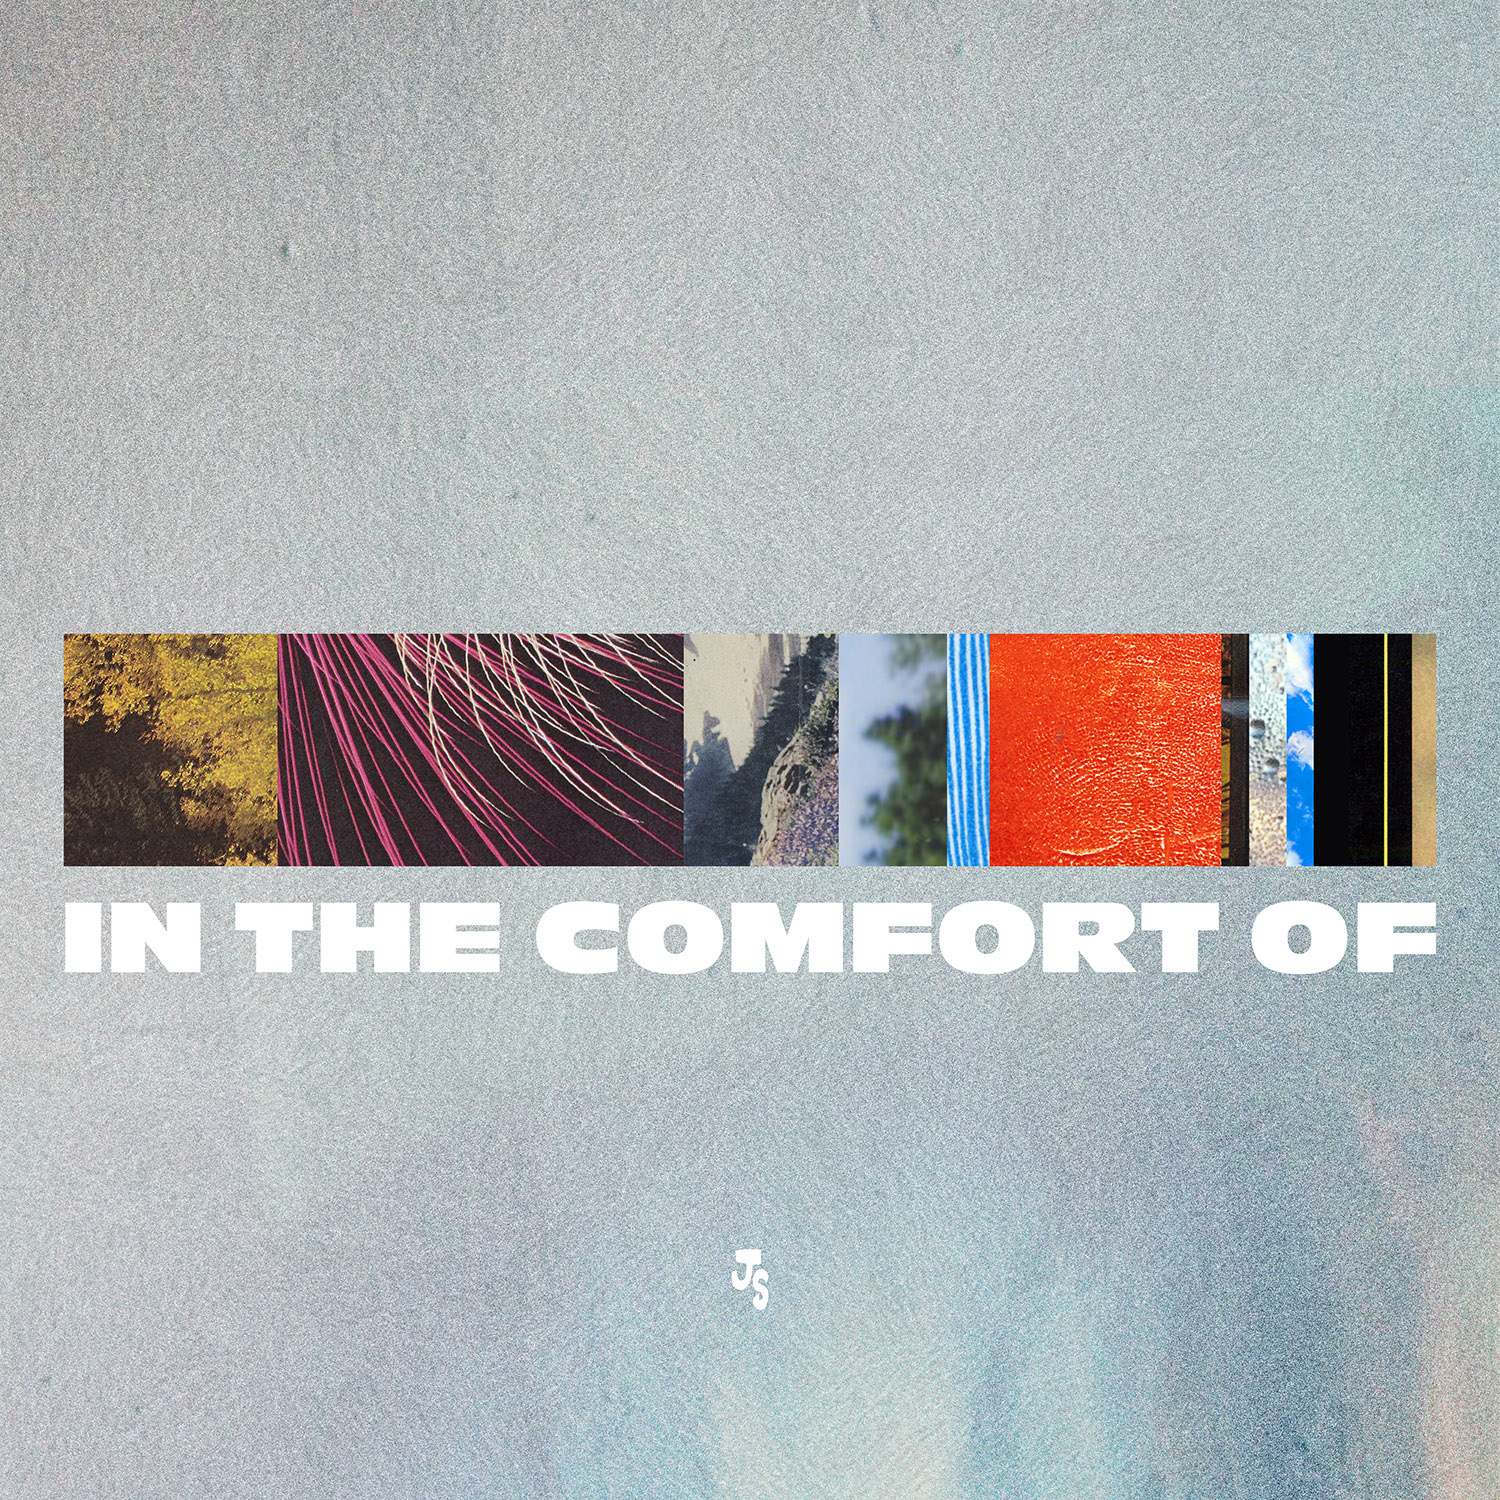 In the Comfort Of includes features from Xavier Omär, Jesse Boykins III, JMSN, Smino, James Vincent McMorrow, and more.